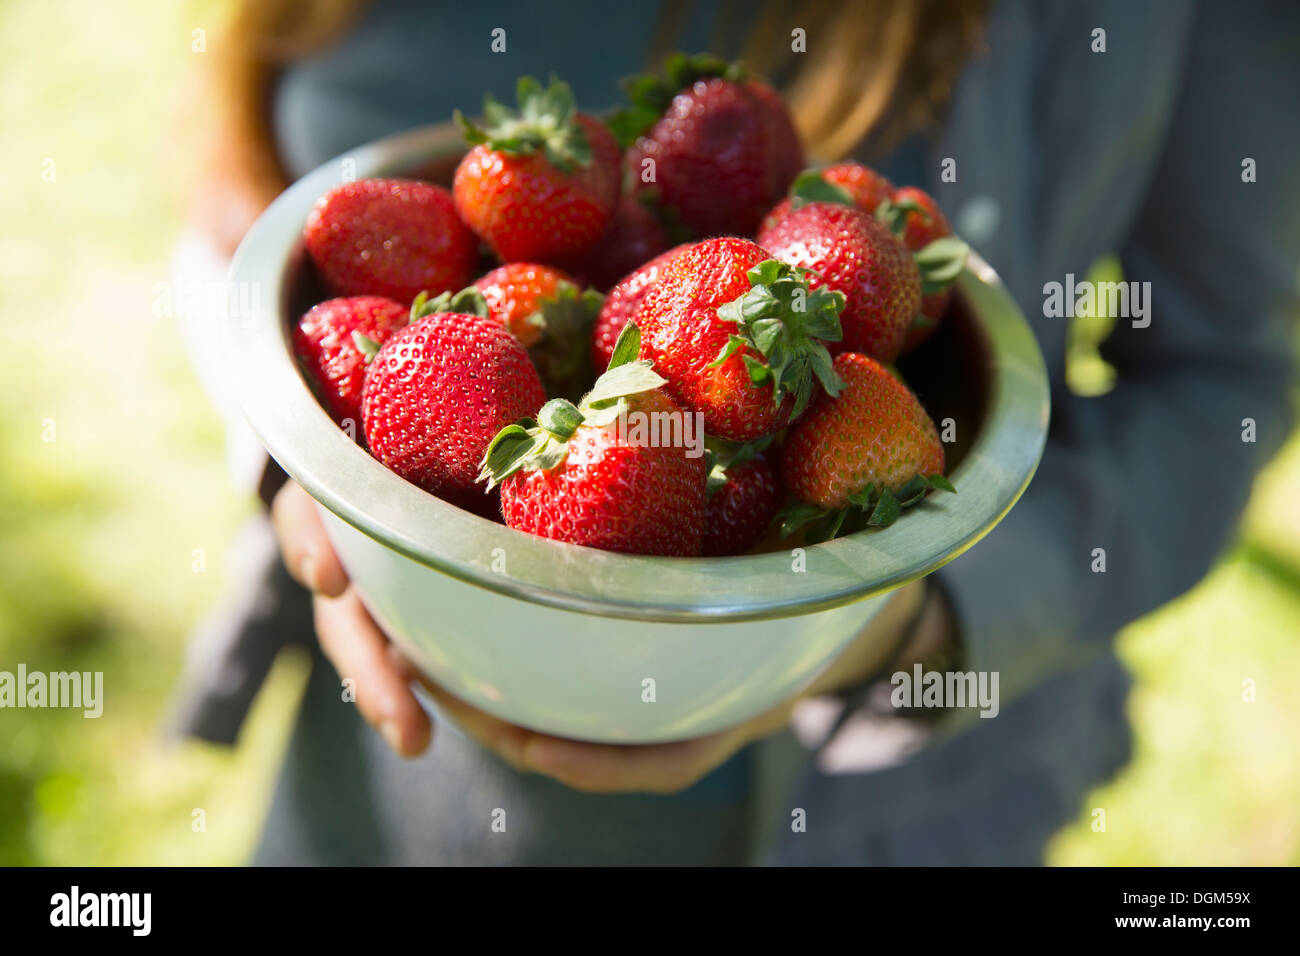 On the farm. A woman carrying a bowl of organic fresh picked strawberries. - Stock Image